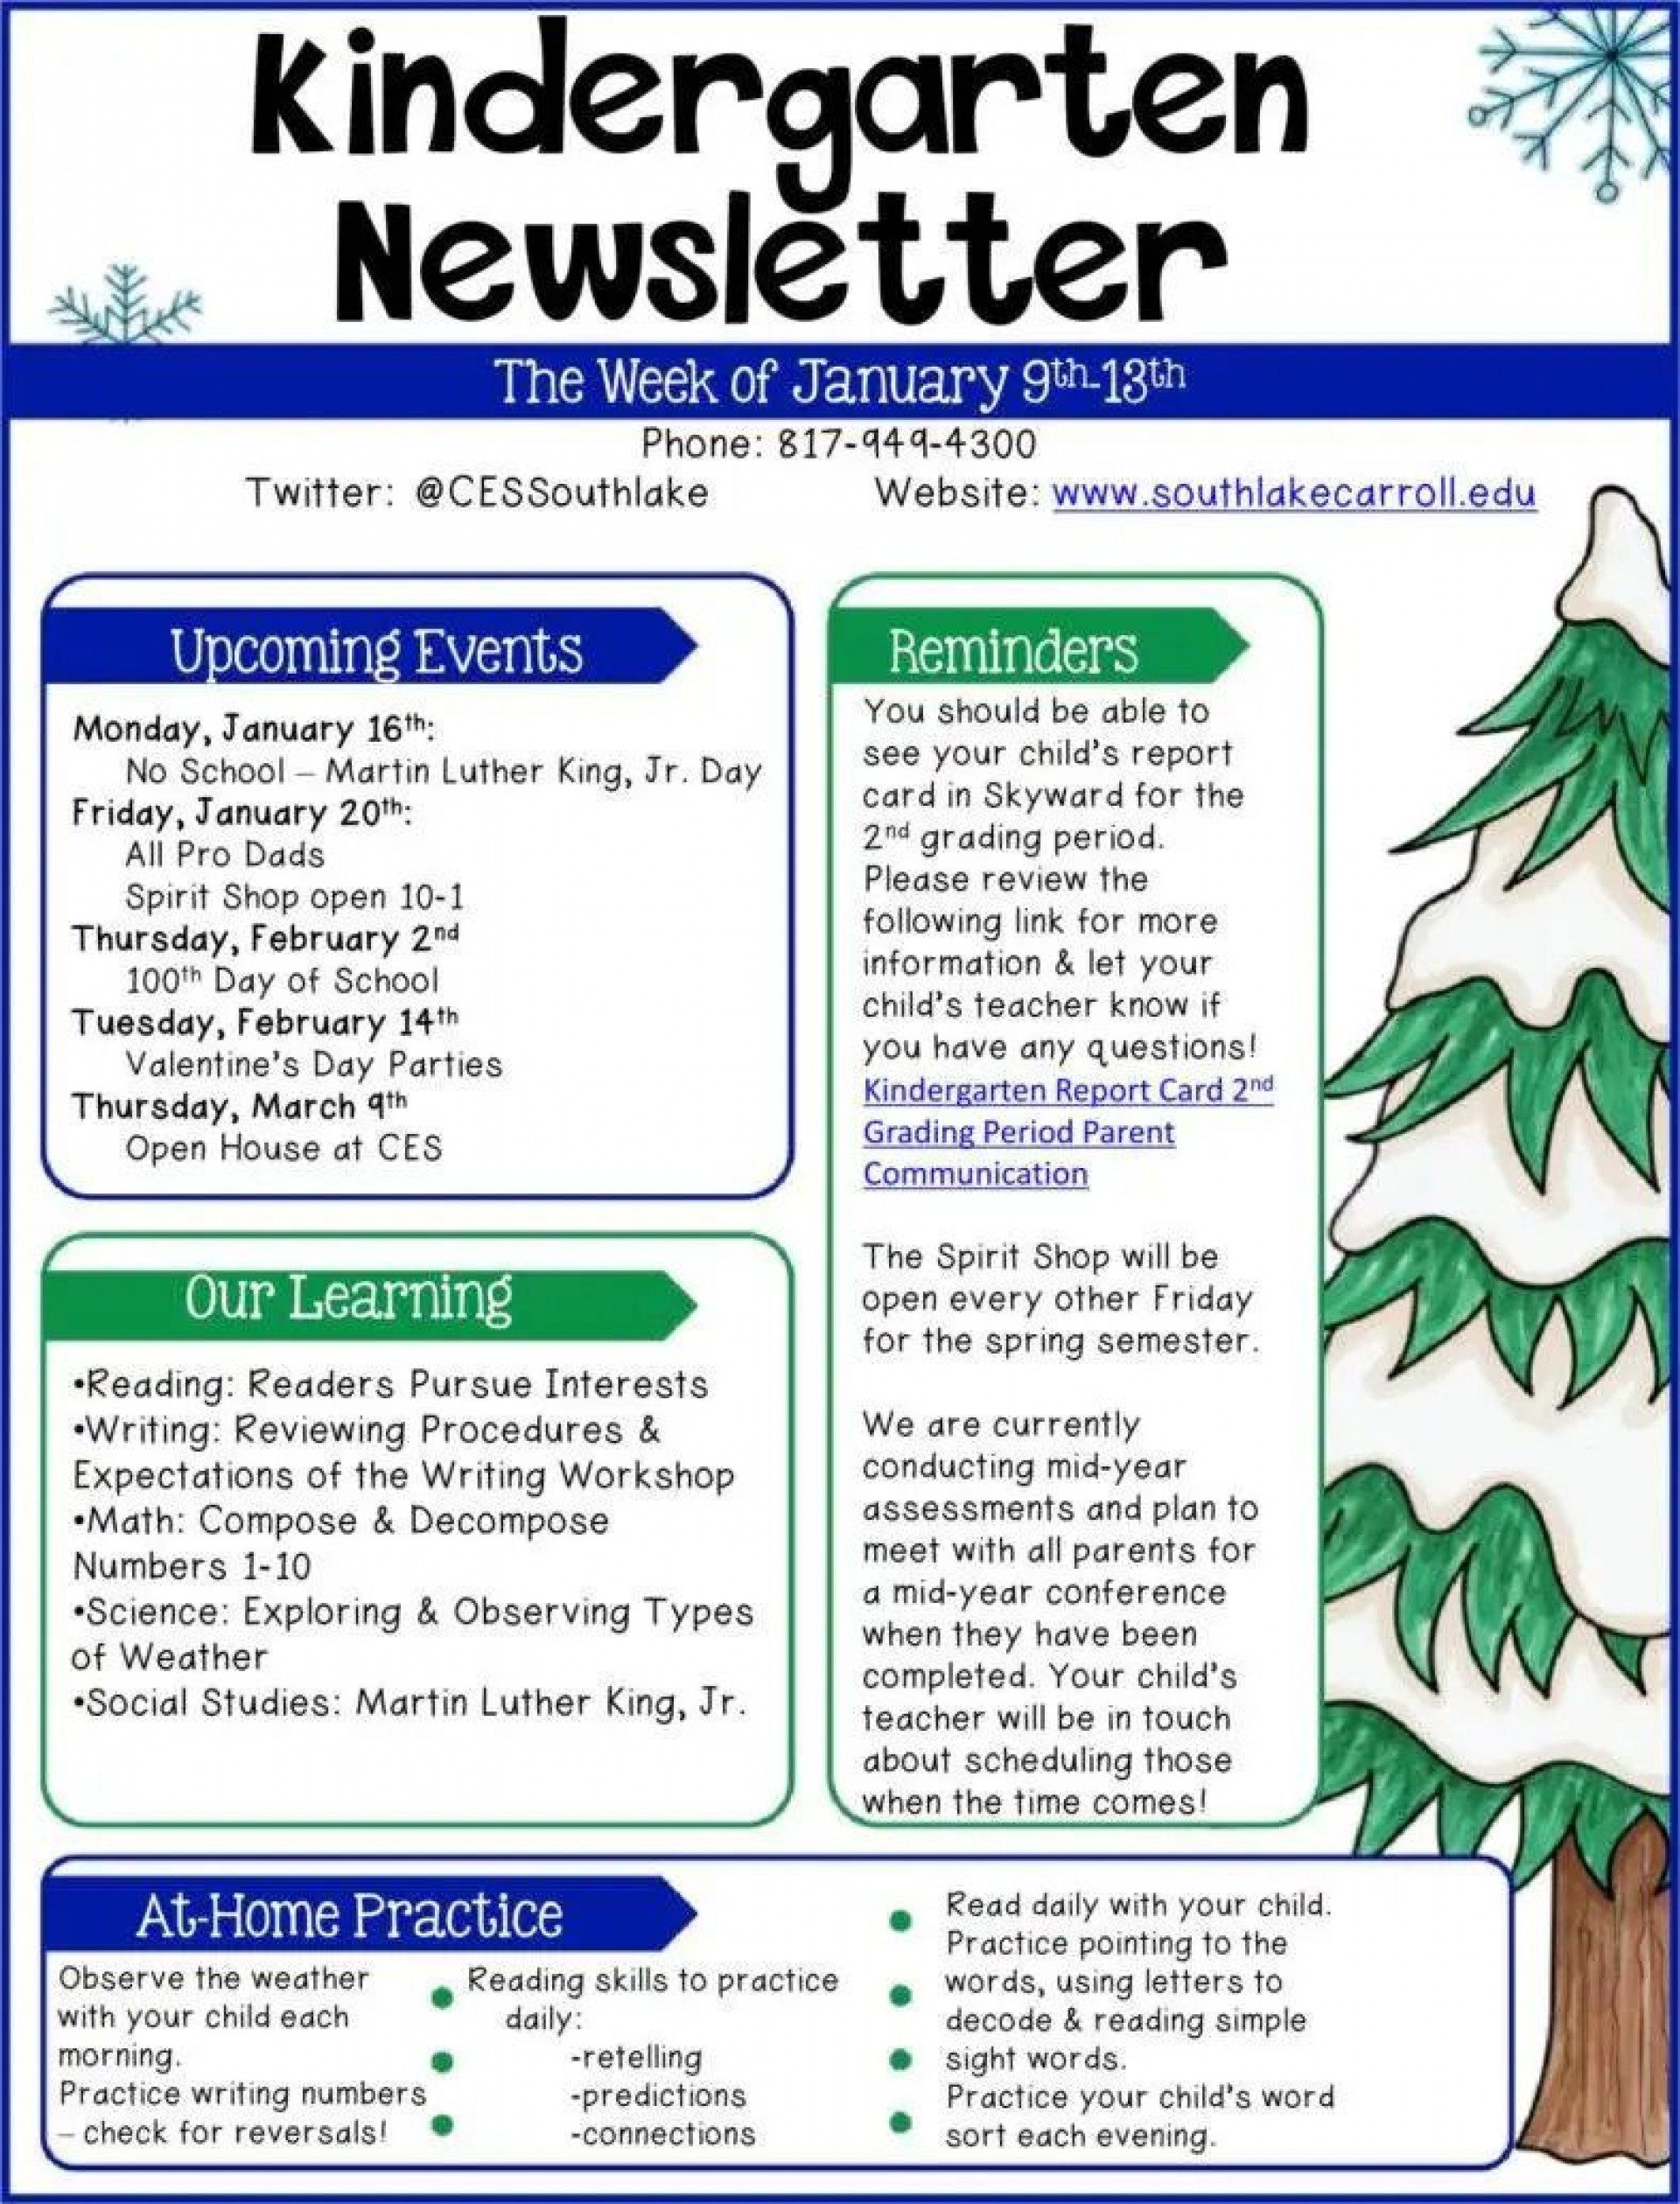 005 Stunning Free Newsletter Template For Teacher Example  Downloadable Editable Preschool1920